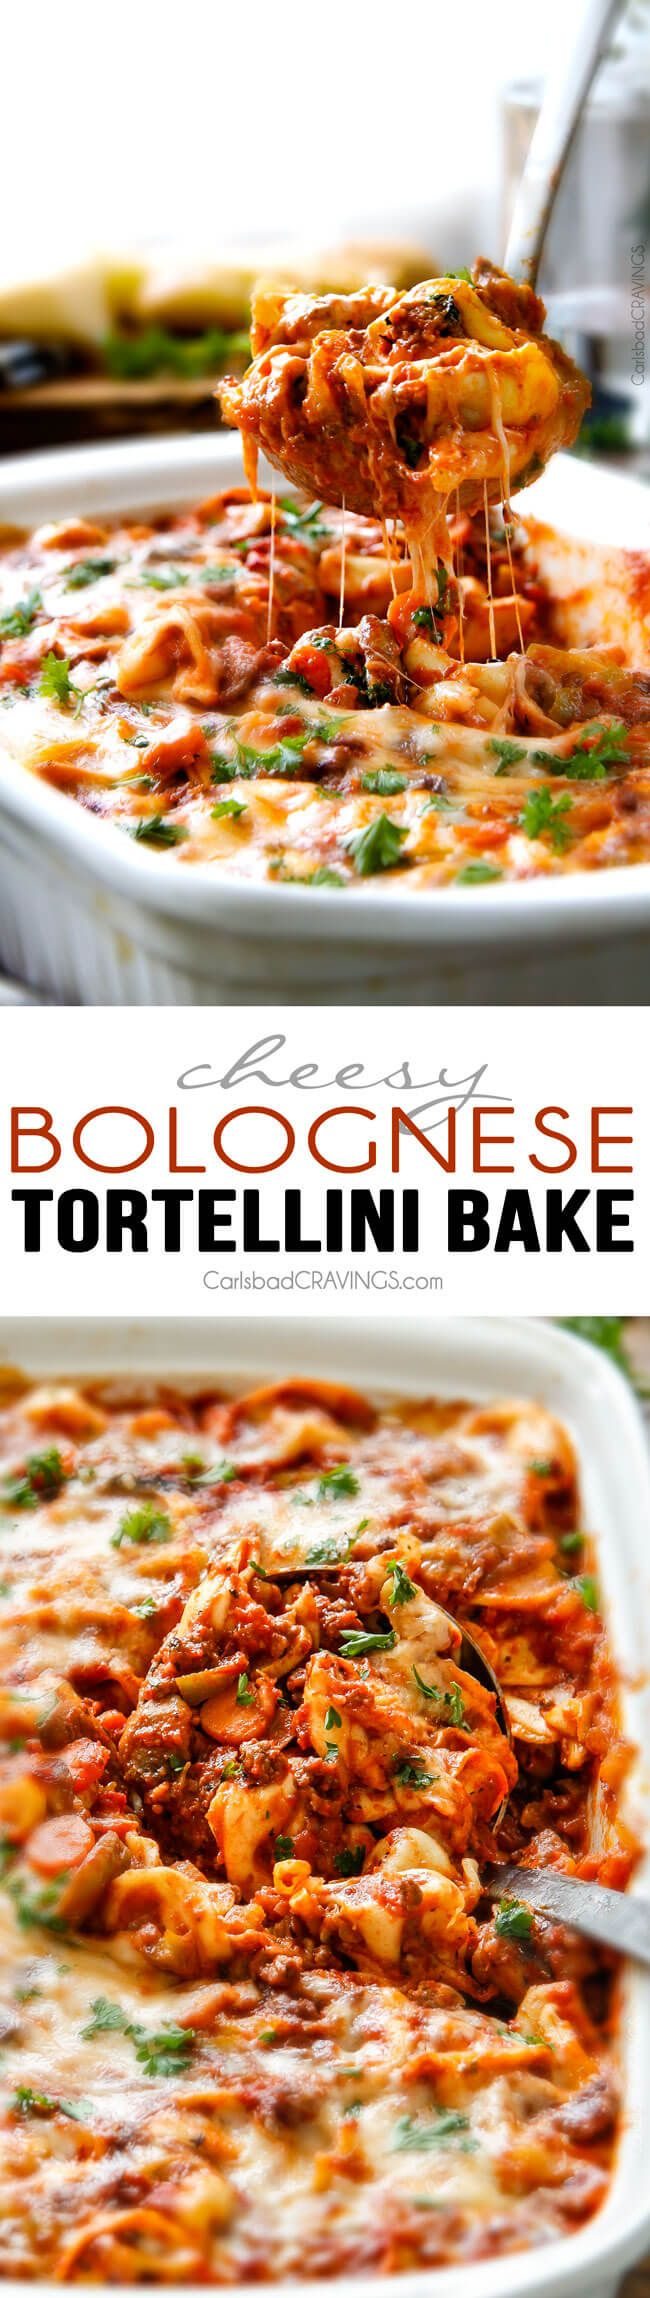 Cheesy Bolognese Tortellini Bake - This is my family's favorite pasta of all time - they BEG me to make it!  The sauce is incredibly flavorful and the cheesiness can't be beat!  via @carlsbadcraving